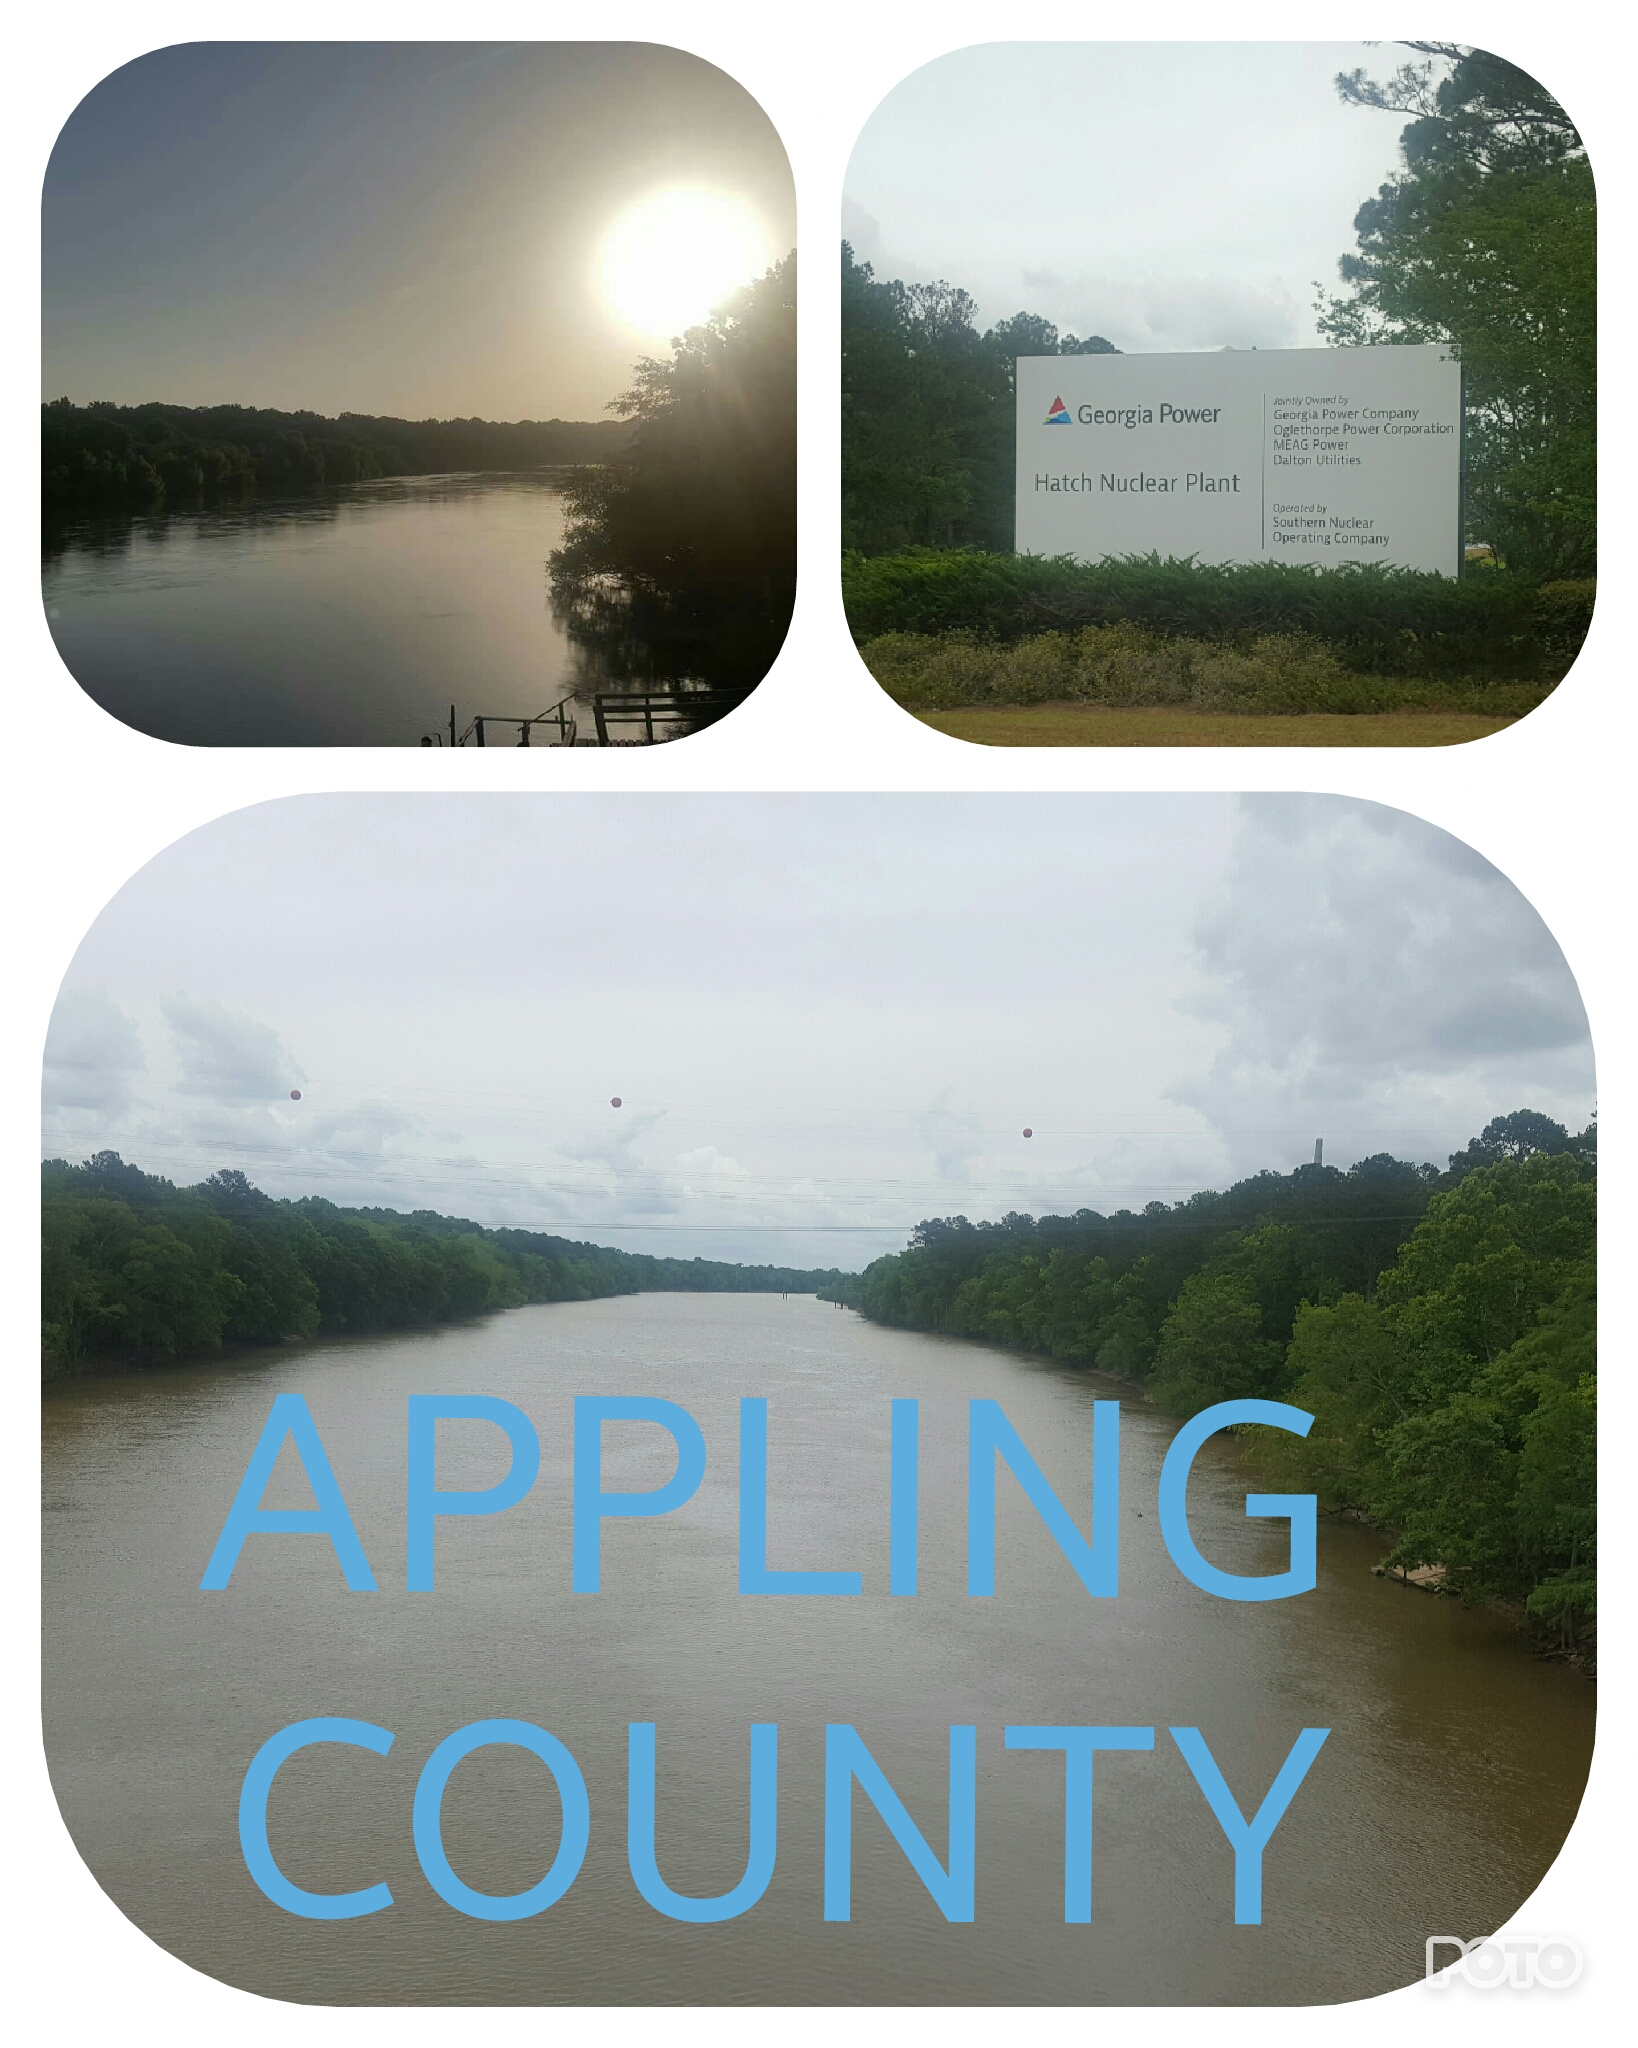 Copy of APPLING COUNTY.jpg